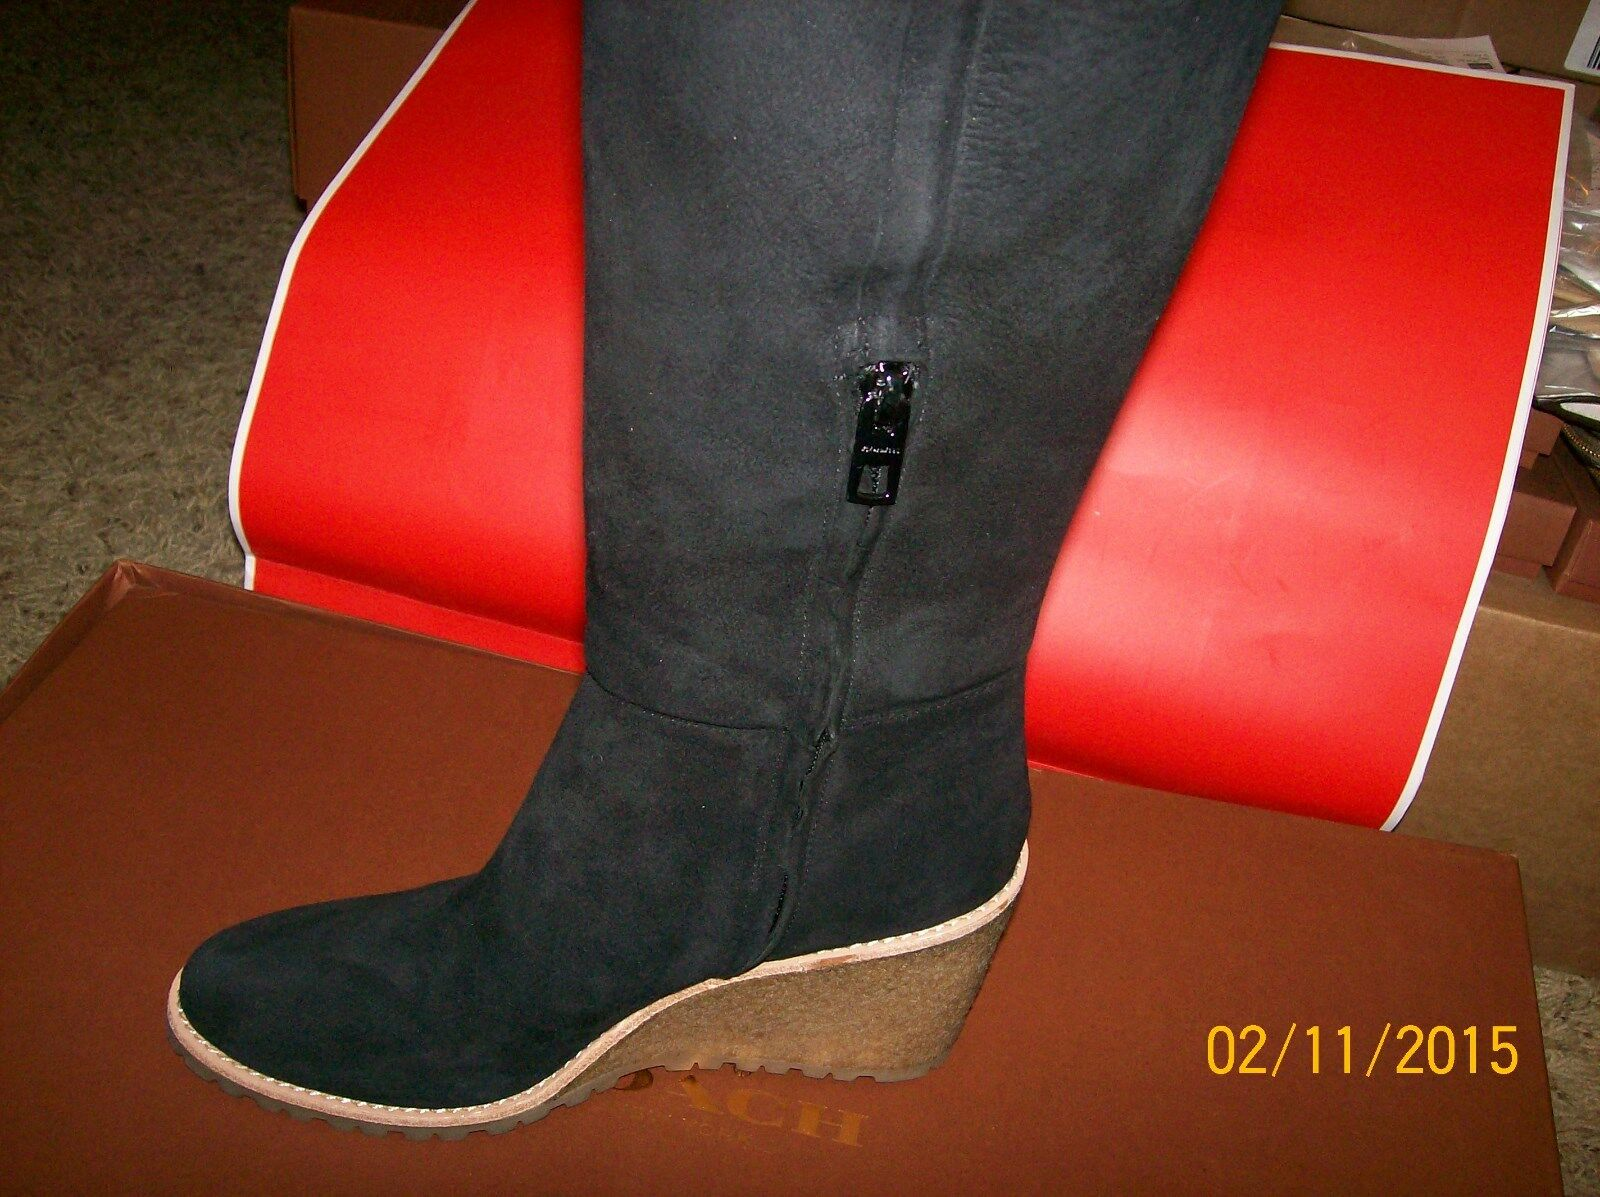 NWB COACH KEELY SHEARLING LINED WEDGE BOOT 8.5M, Q6323/A8200 BLACK- SHIPS